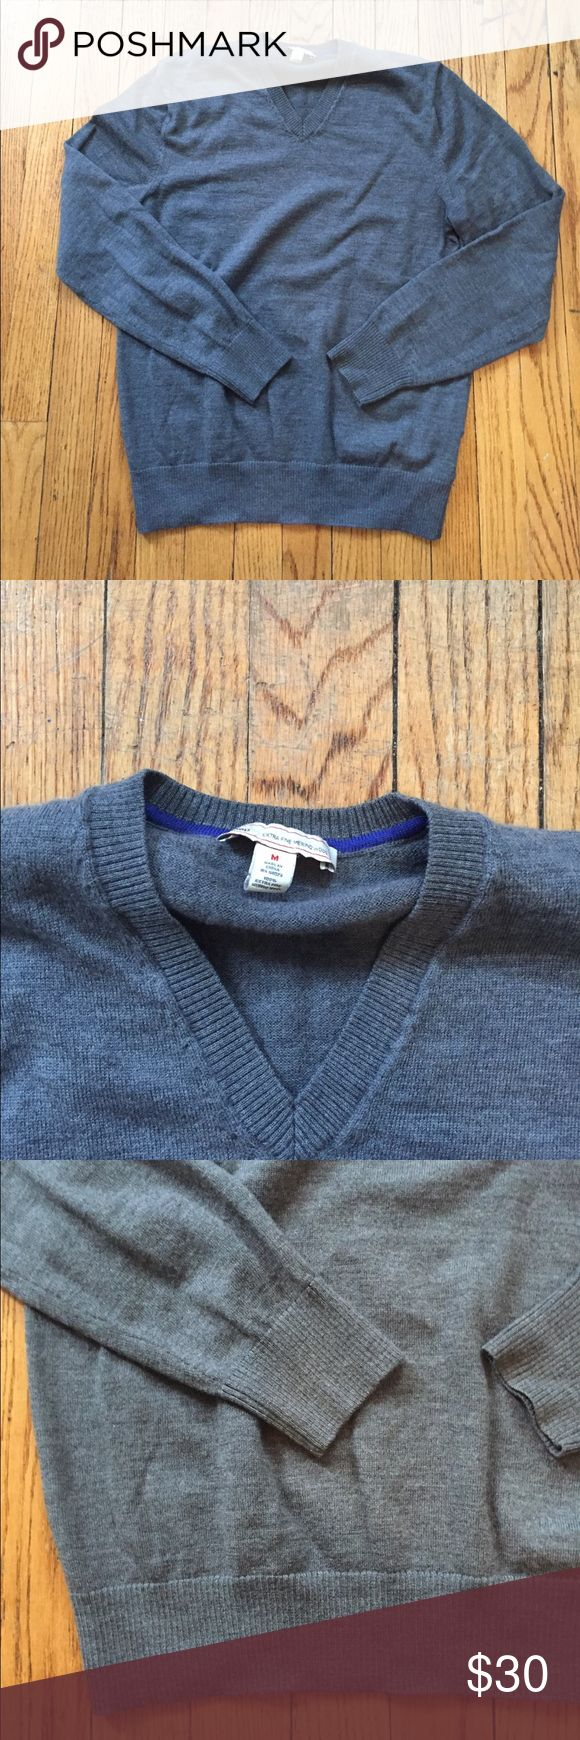 "Men's v neck sweater Men's fit, v is smaller than women's style, fit is looser, but not flowy. Heather gray, ""extra fine merino wool"" GAP Sweaters V-Necks"